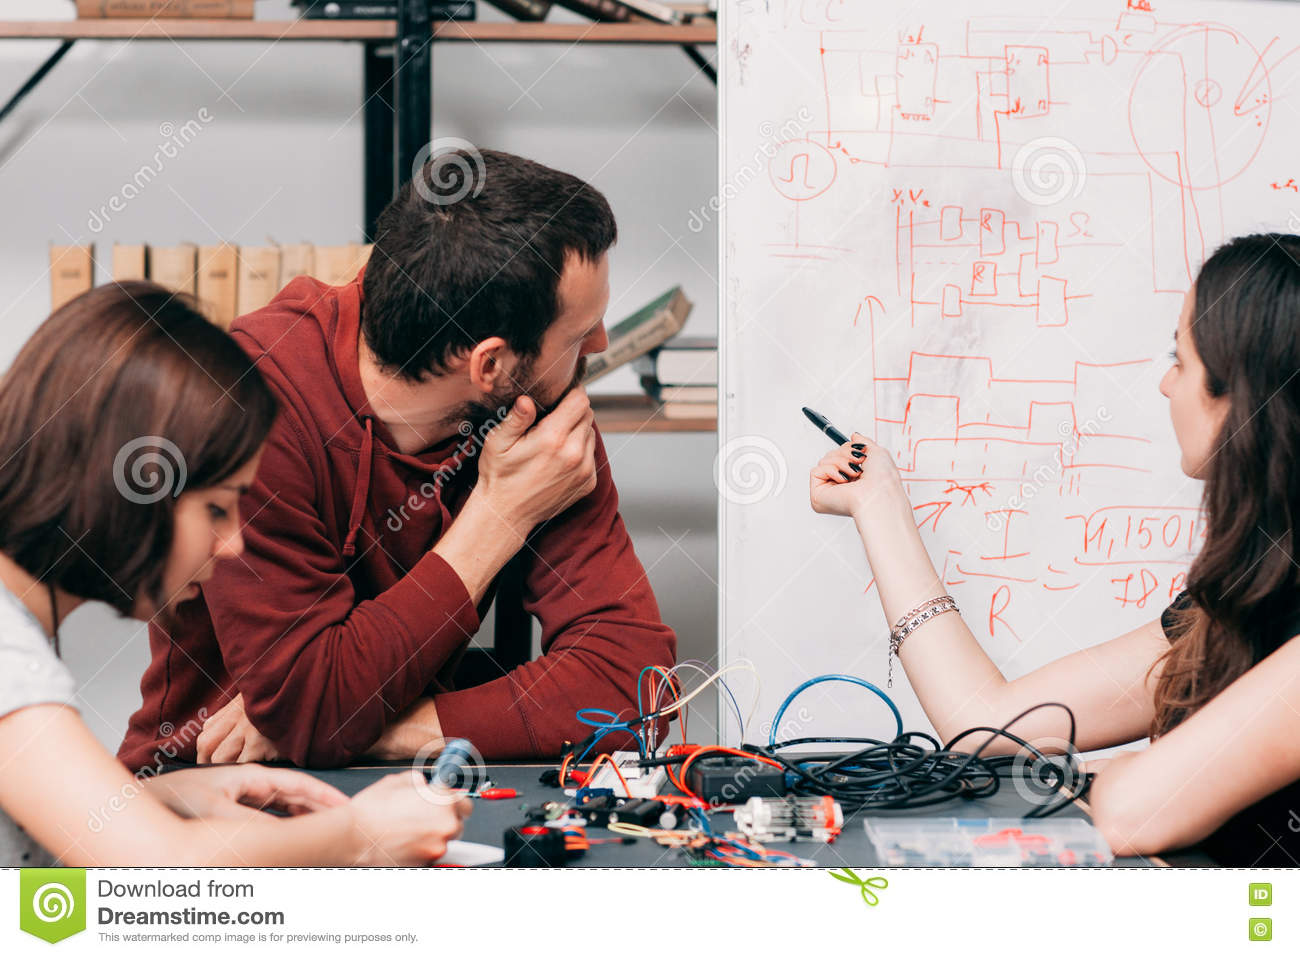 hight resolution of wiring diagram discussing at laboratory young engineers creating new model of electronic construction experimental research of ways of connecting cables